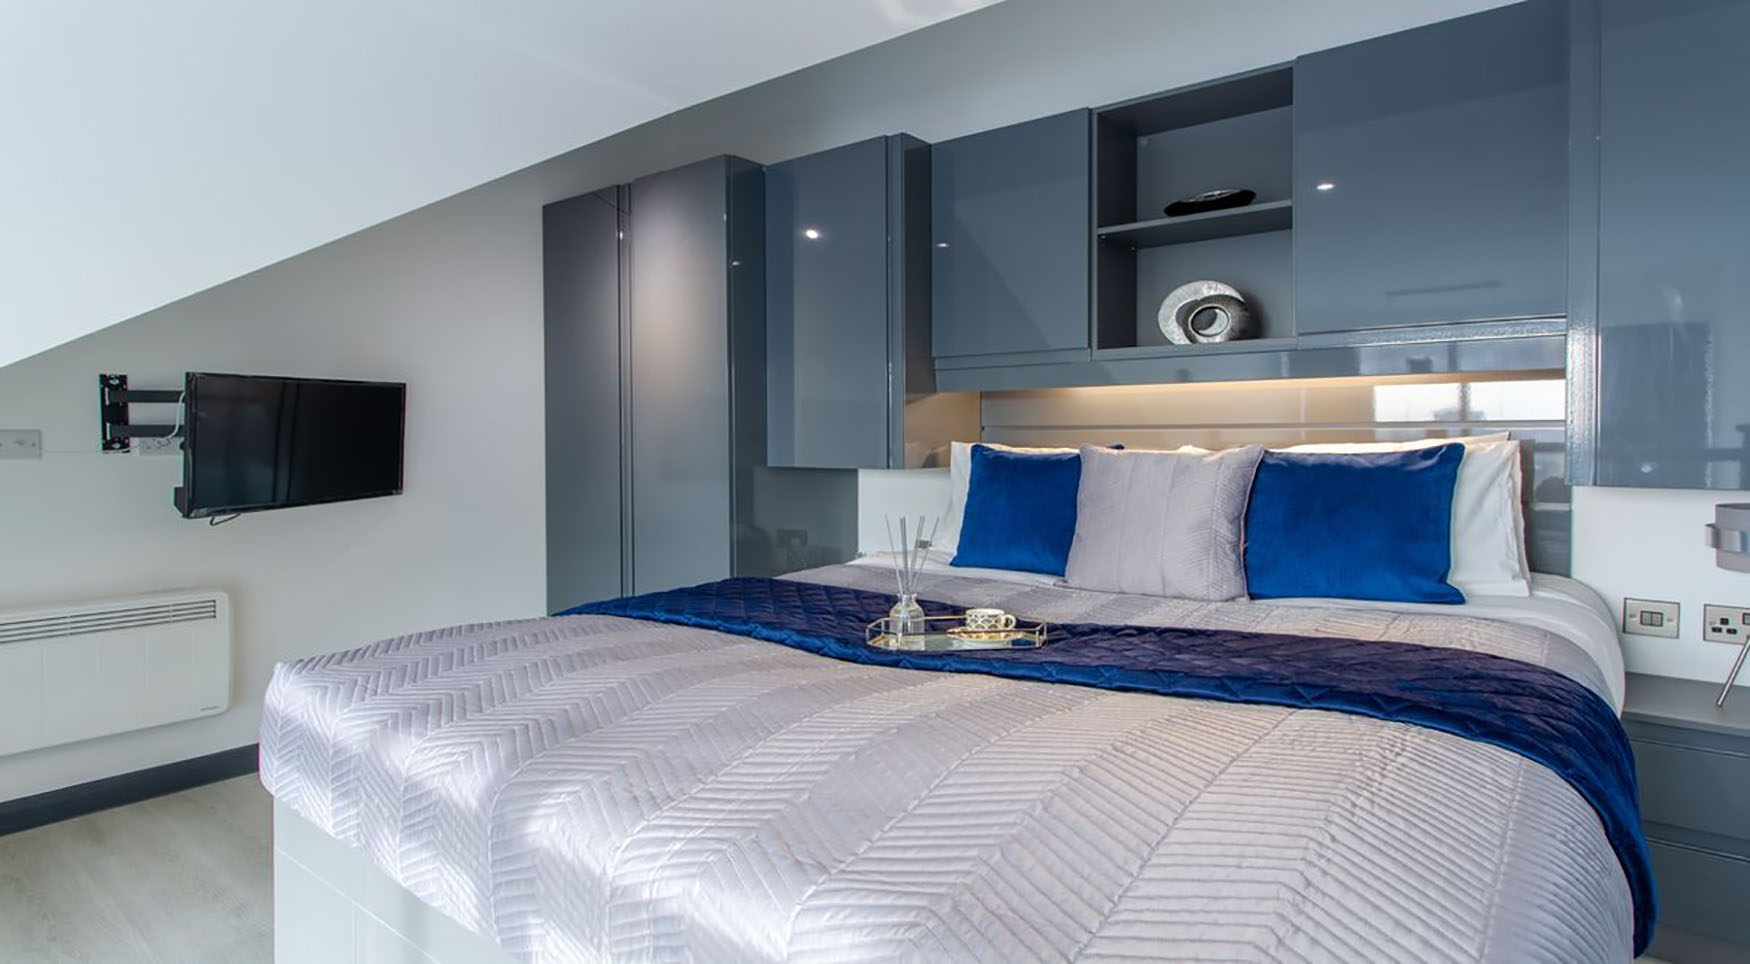 Bedding atThe Residence Coventry, Centre, Newmarket - Citybase Apartments